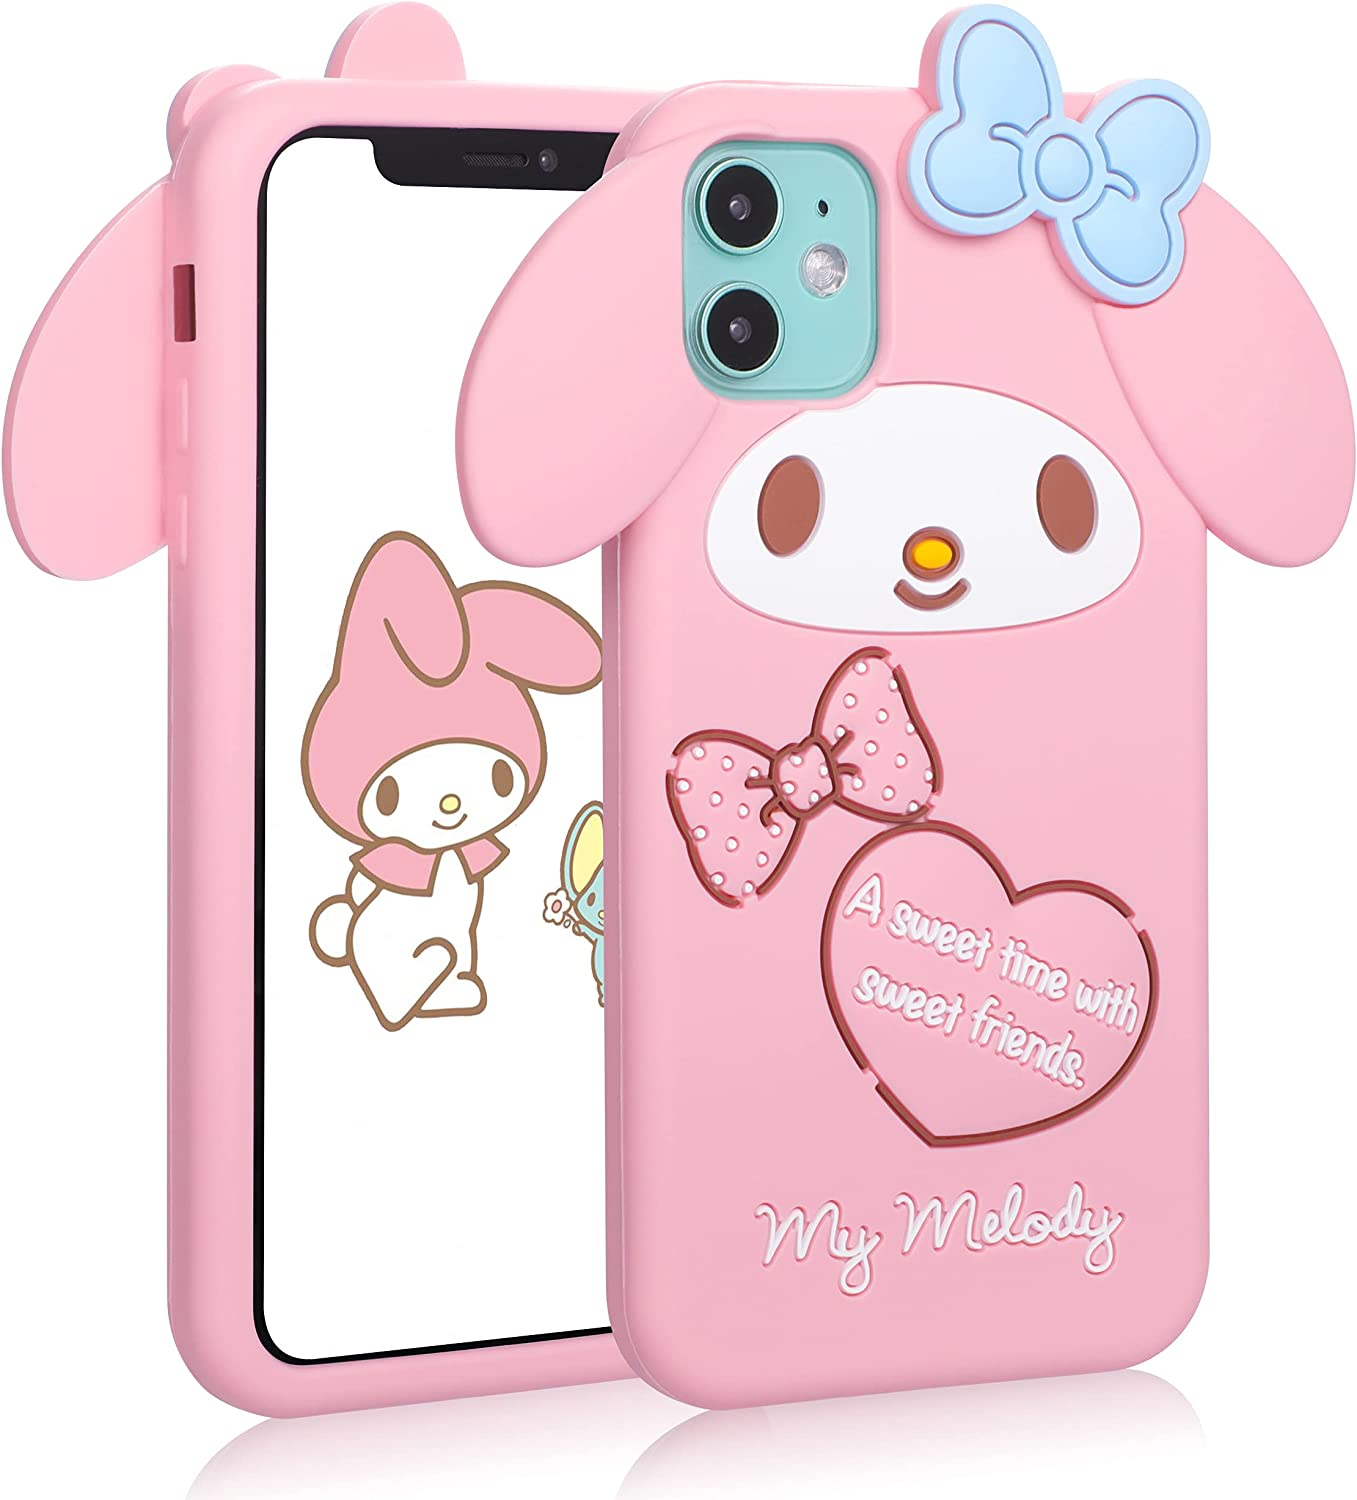 STSNano Case for iPhone 12 Pro/12 6.1